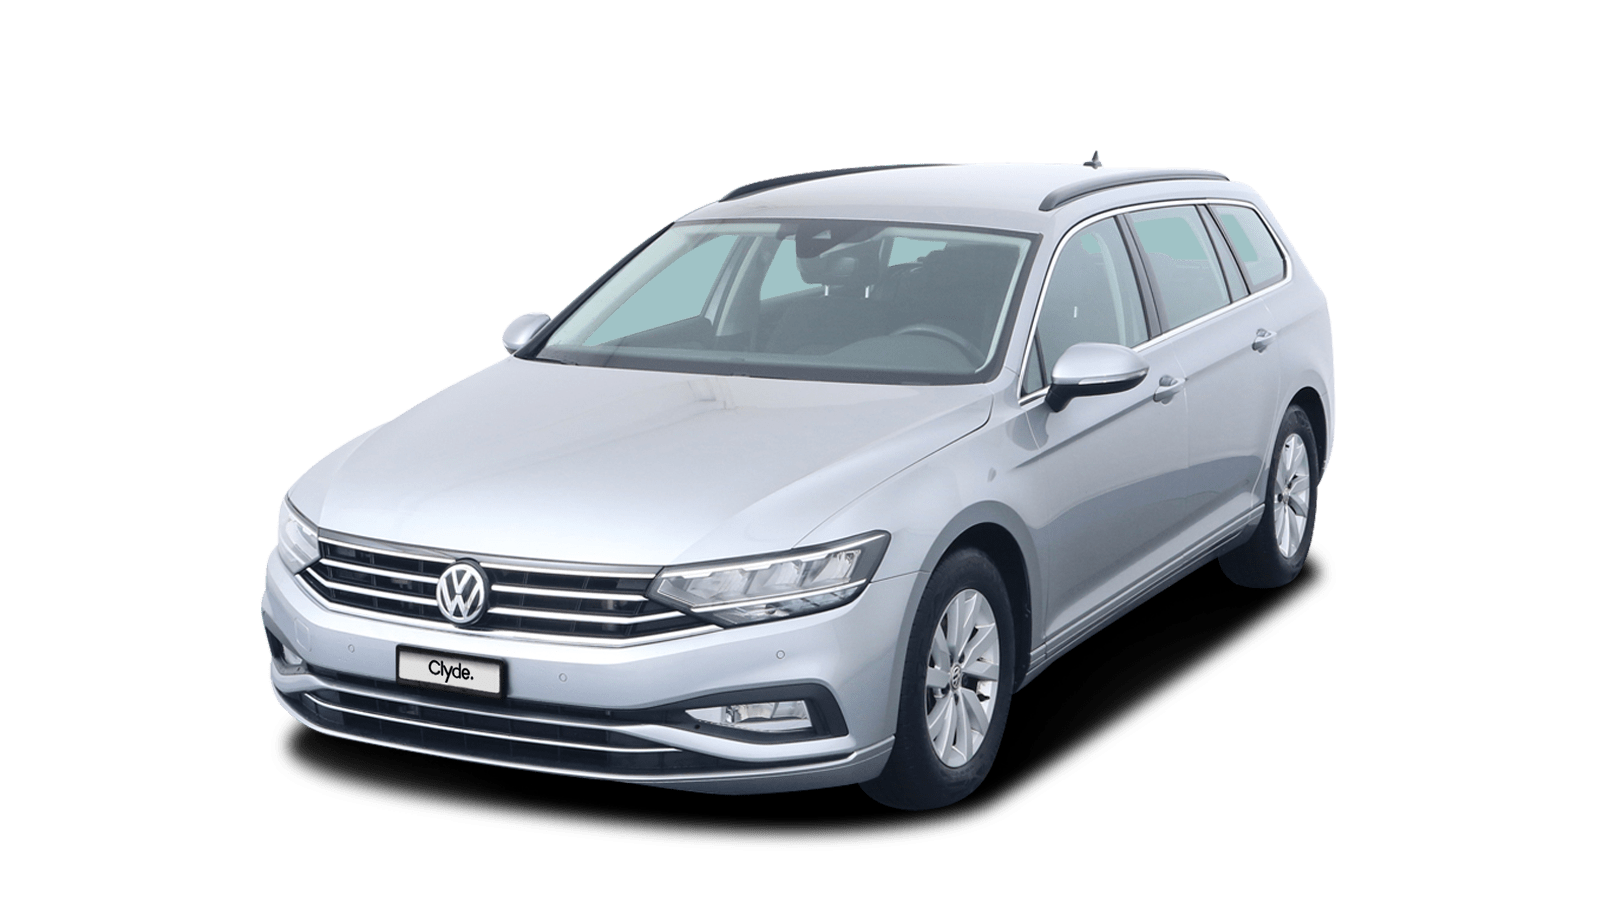 VW Passat Variant Silver front - Clyde car subscription